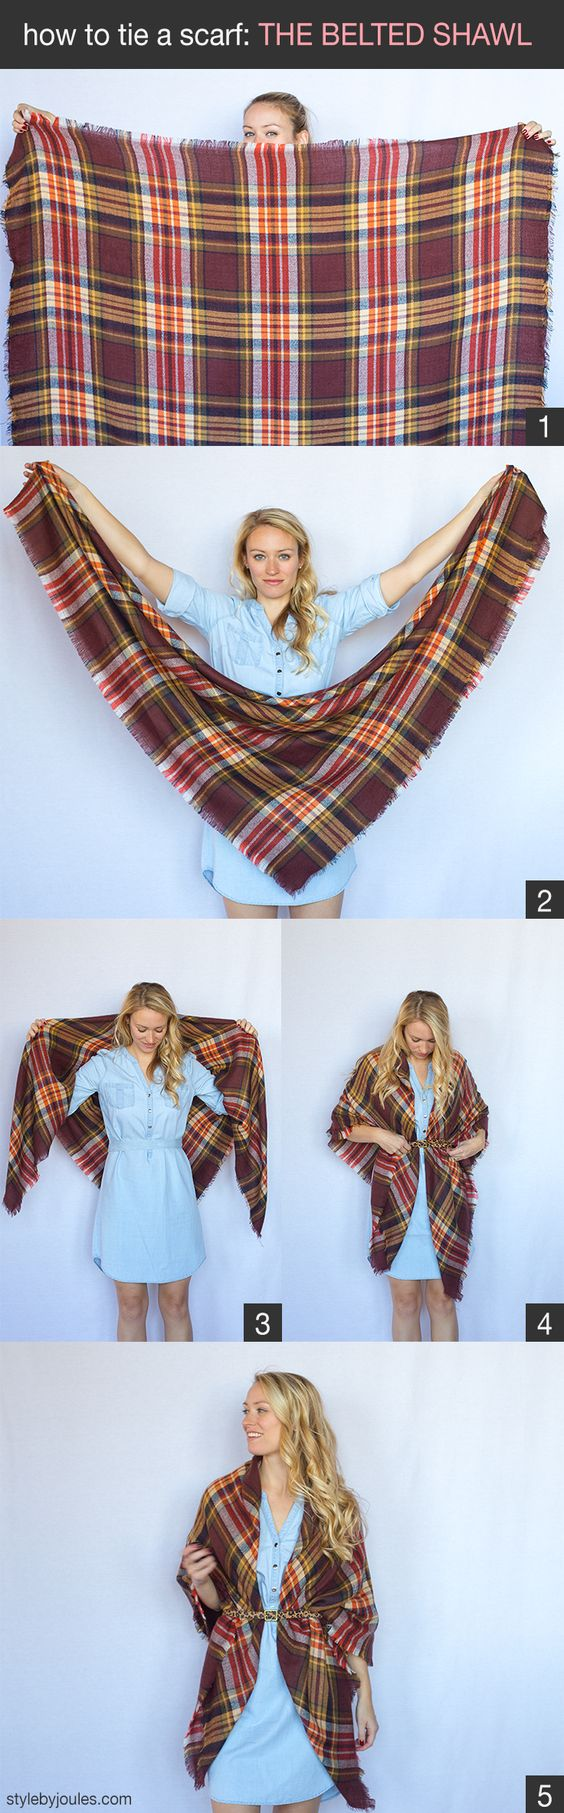 http://stylebyjoules.com/fashion/outfits/9-favorite-super-easy-ways-tie-scarf/